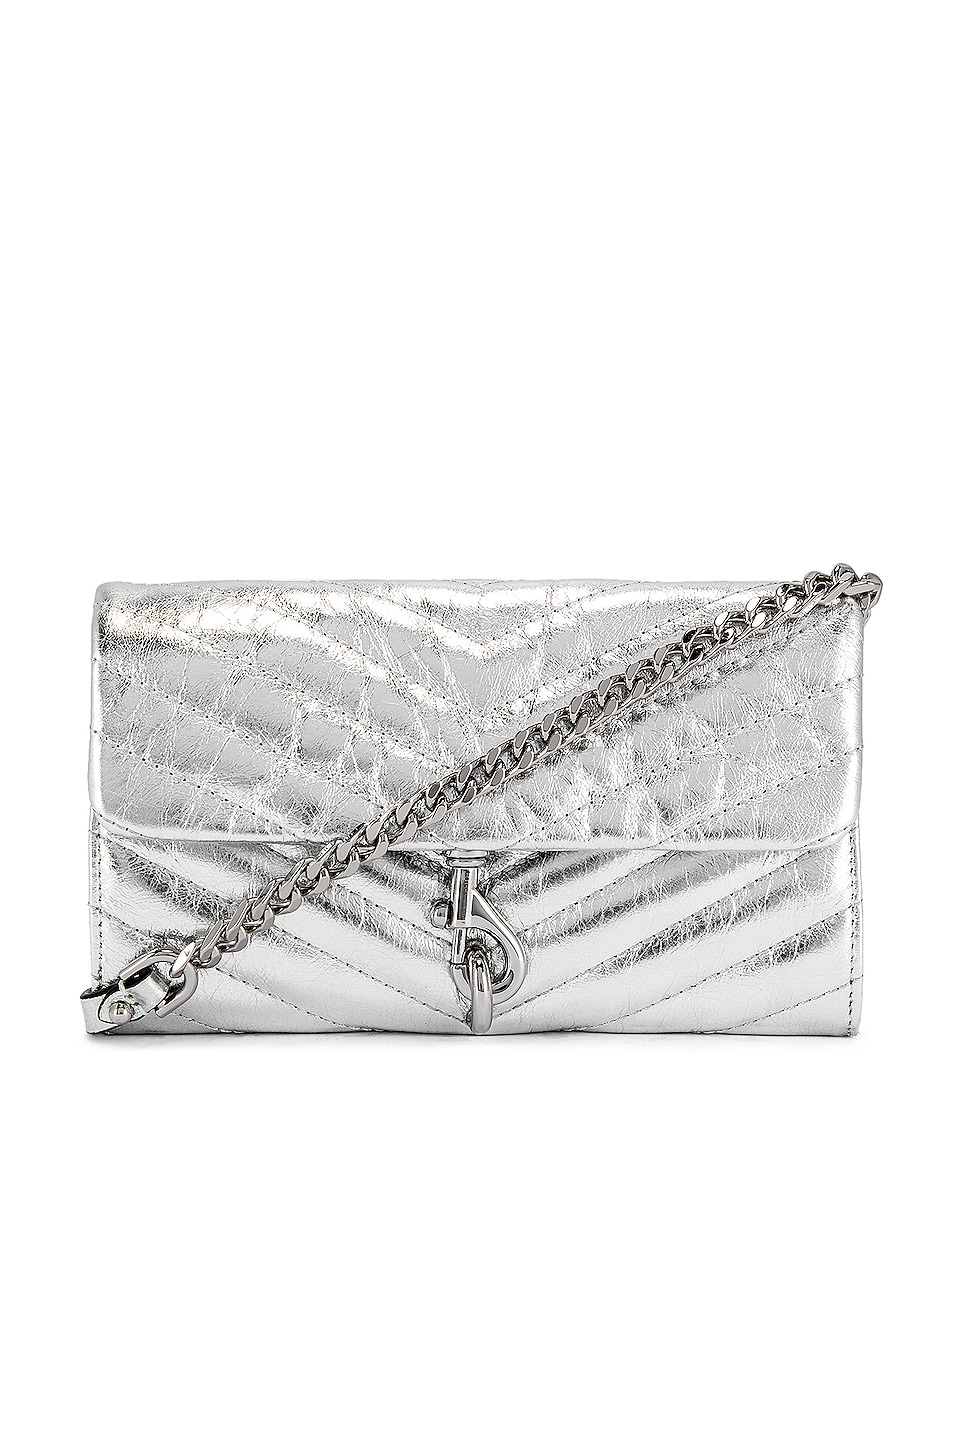 Rebecca Minkoff Edie Wallet On Chain Bag in Silver